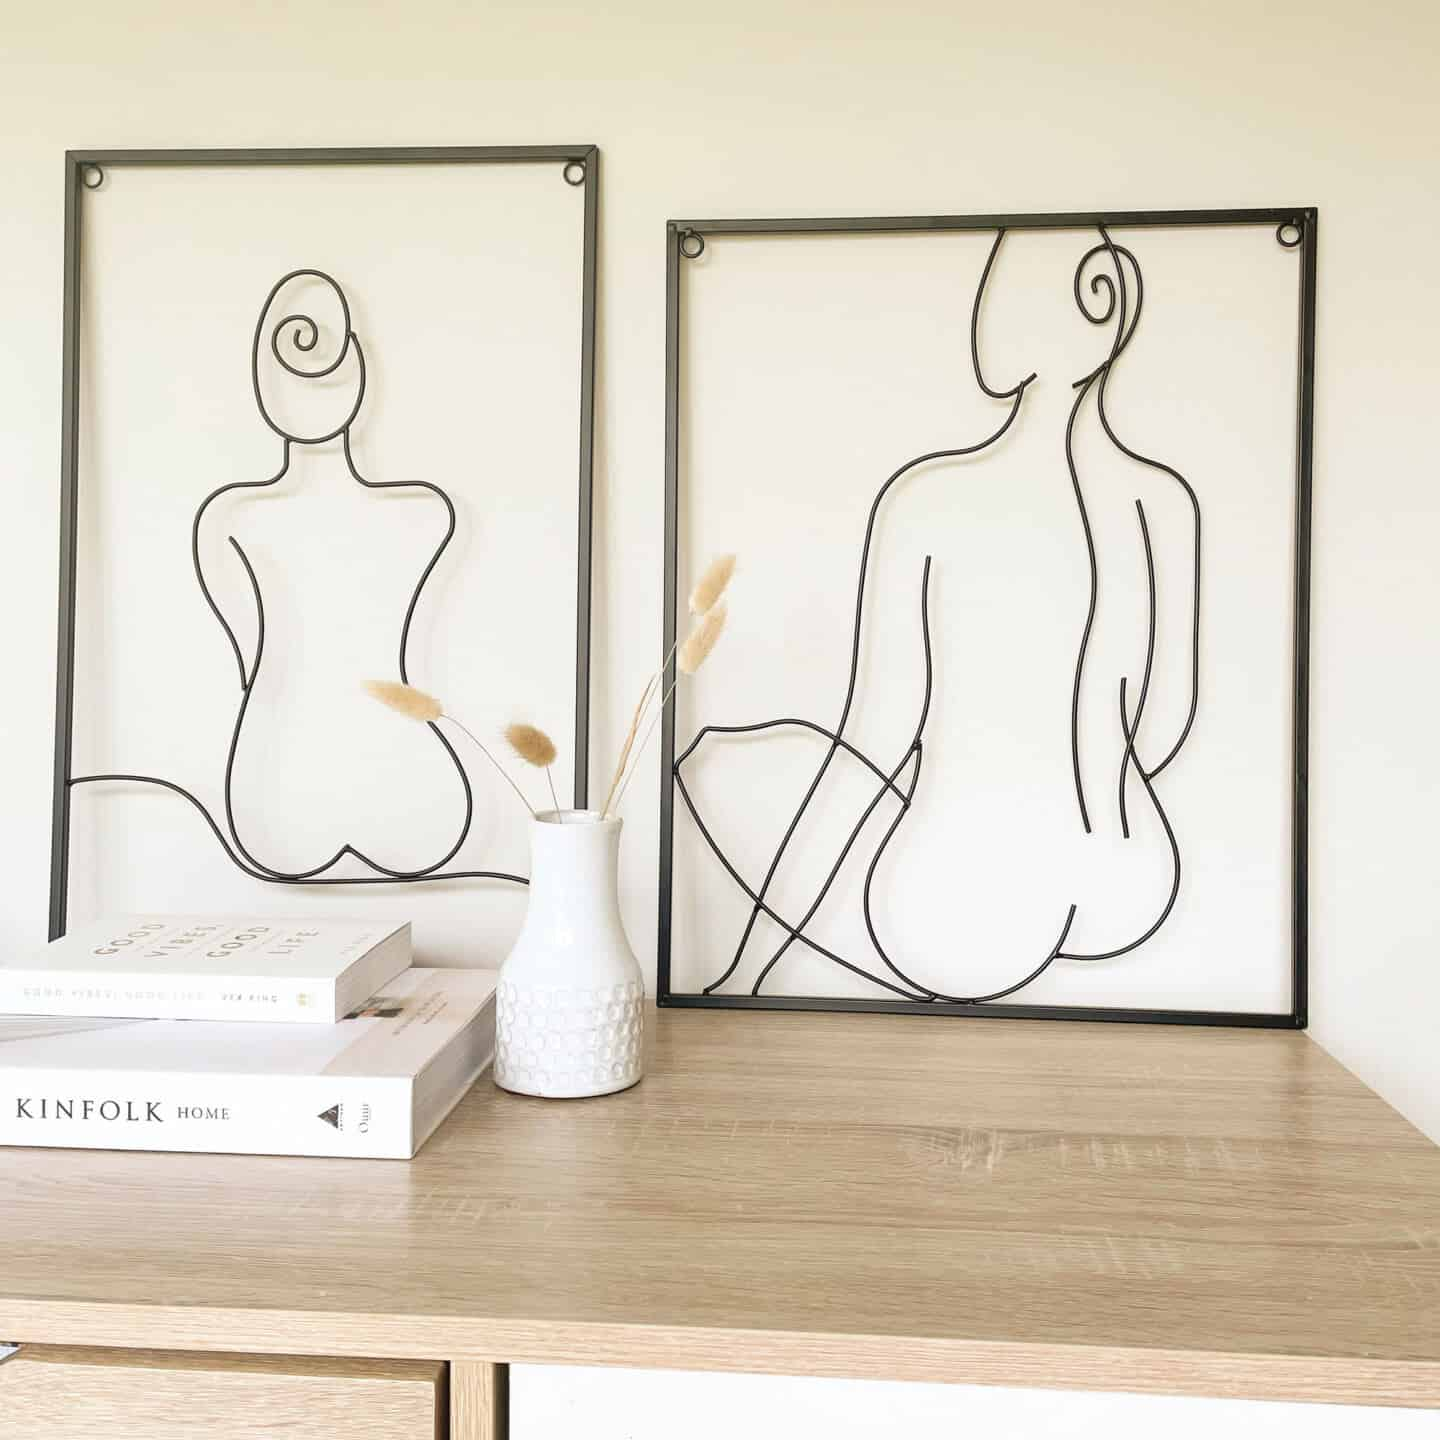 Affordable luxury homewares from Price & Coco Interiors. Two pieces of wire artwork on a sideboard leaning against the wall.